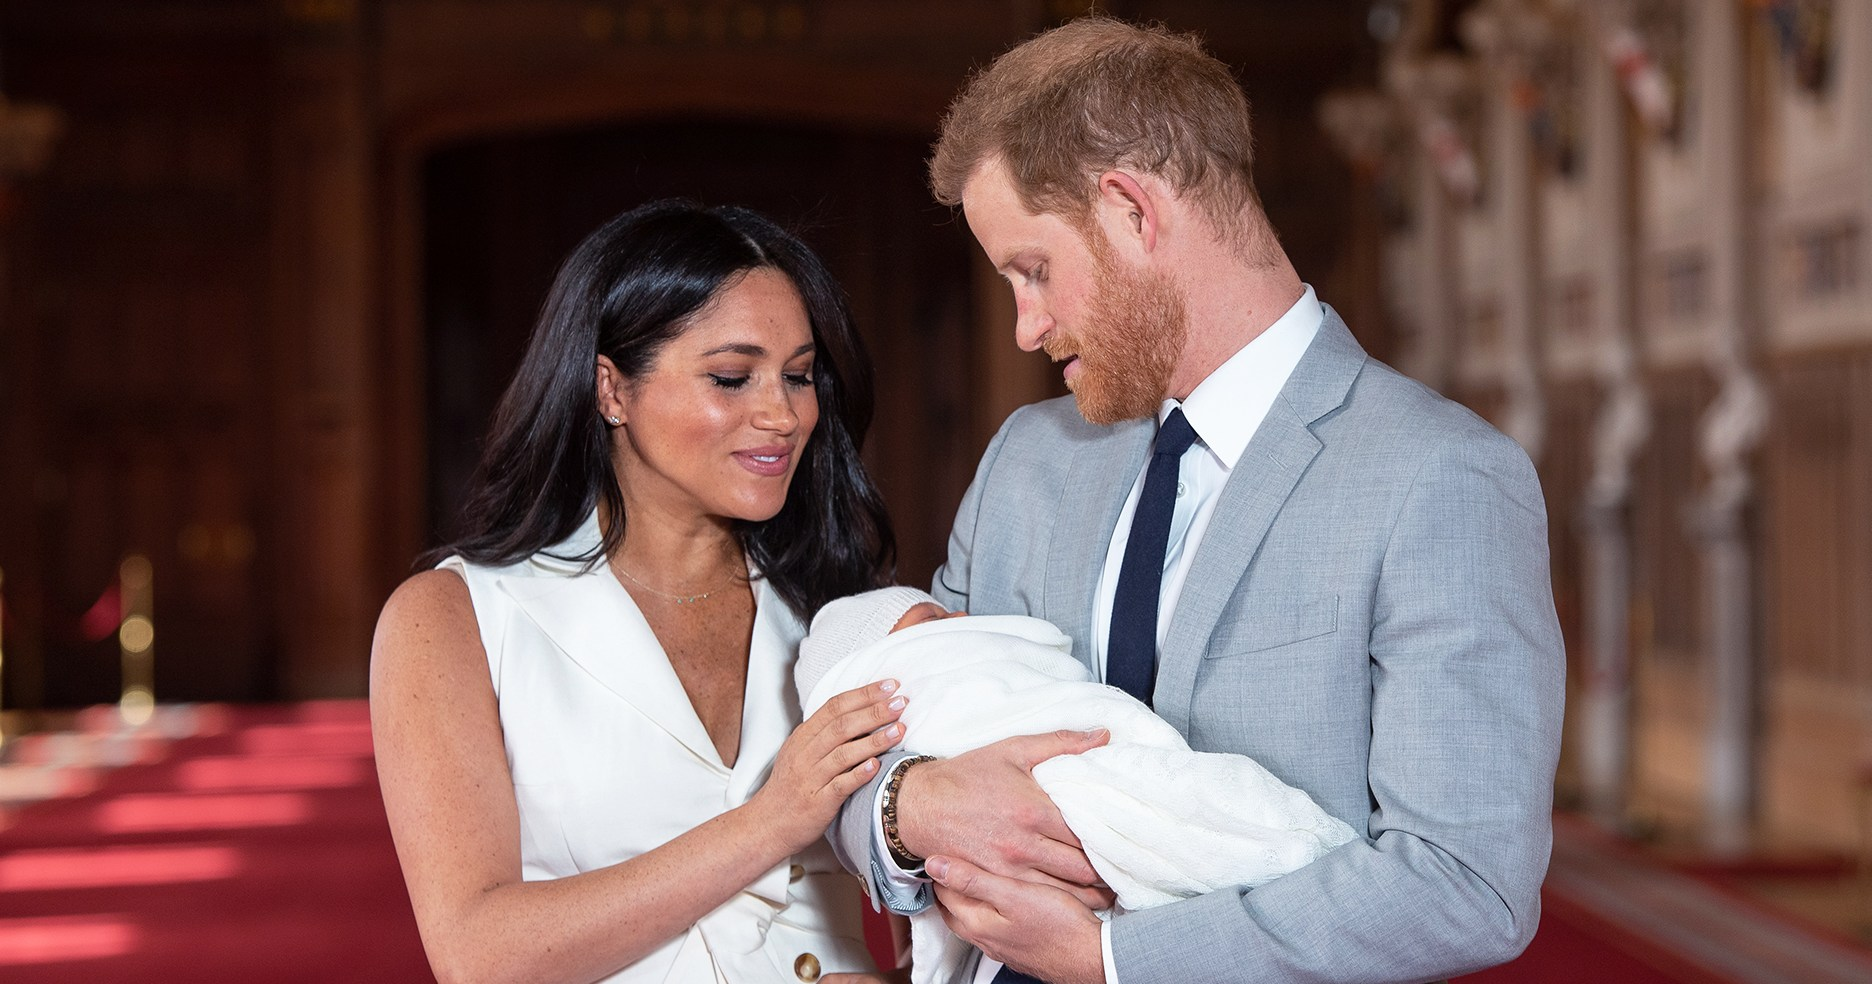 Royal Baby Archie's Birth Certificate: Where Meghan Gave Birth